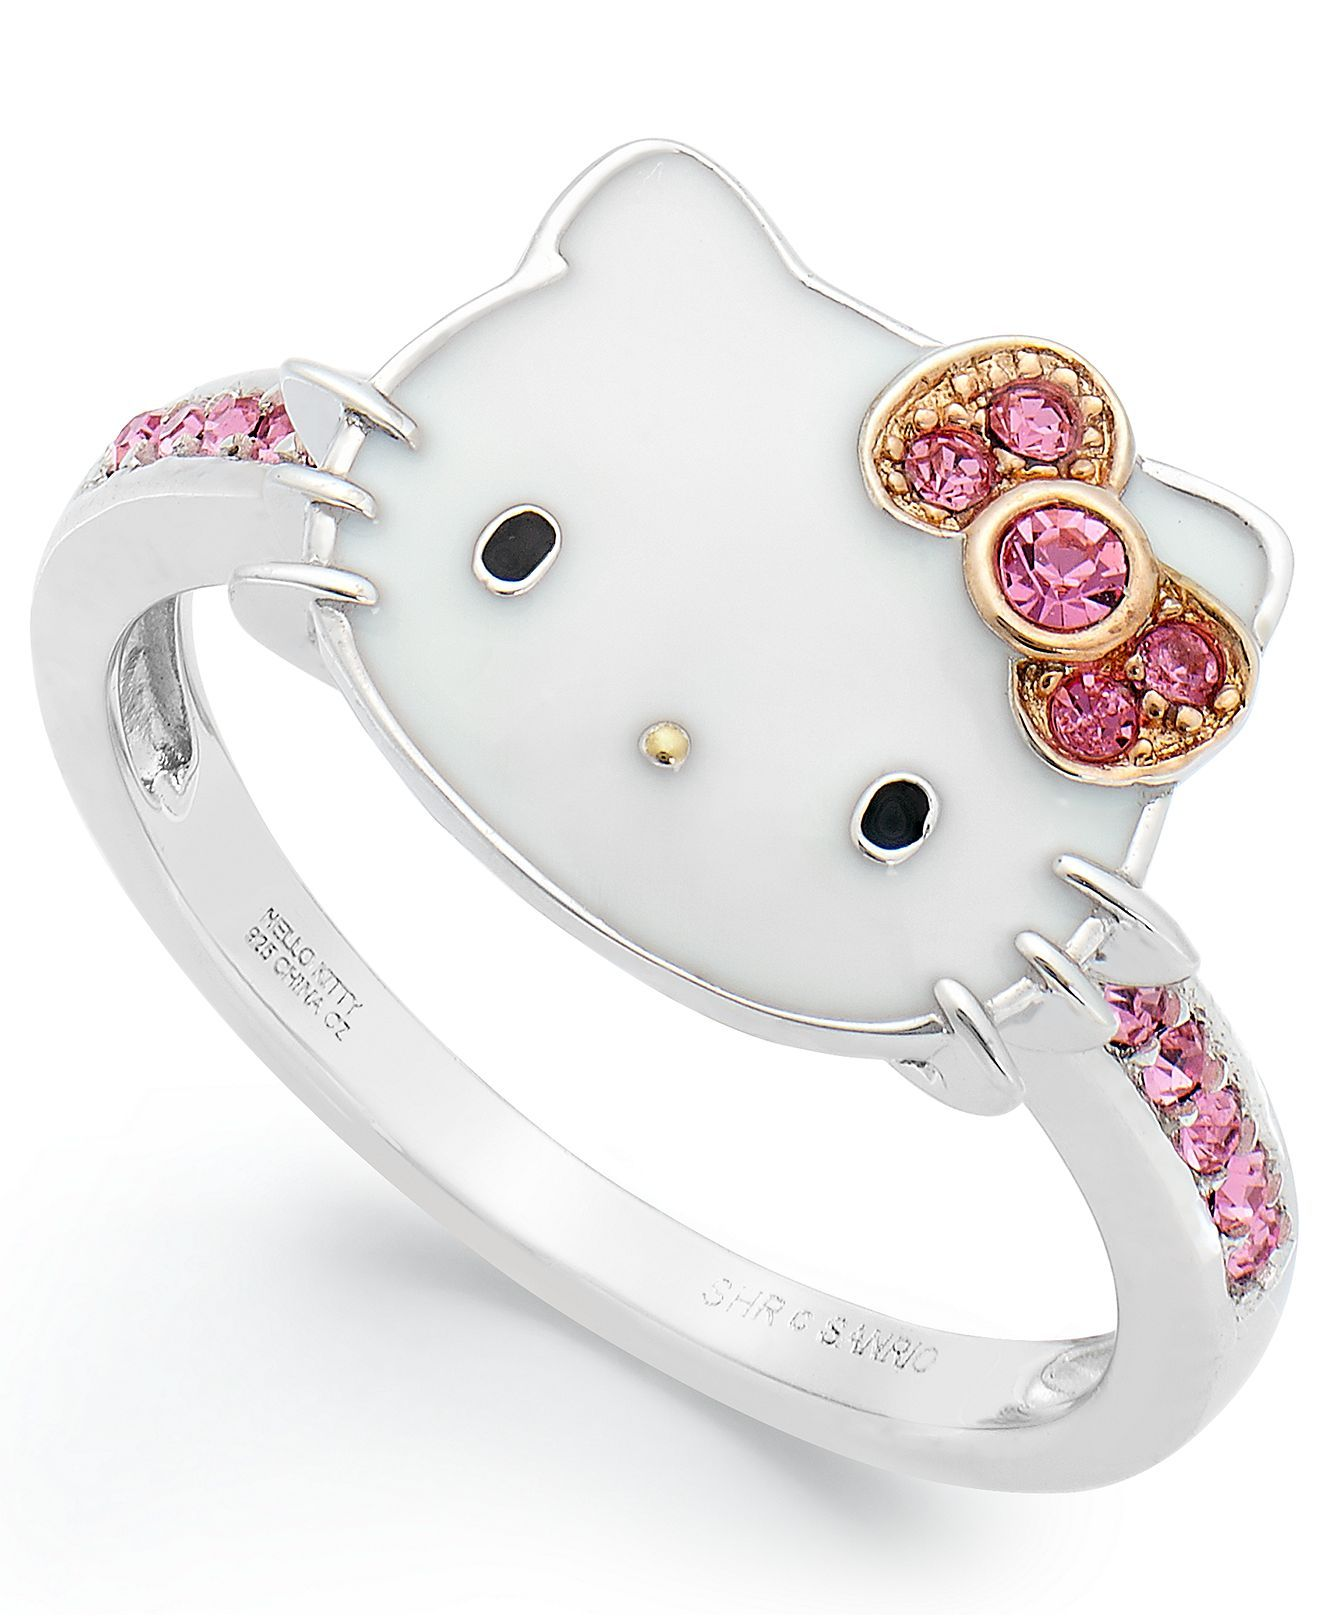 bf3003765 HK |❣| HELLO KITTY Sterling Silver Pink Crystal and Enamel Face Ring -  Macy's